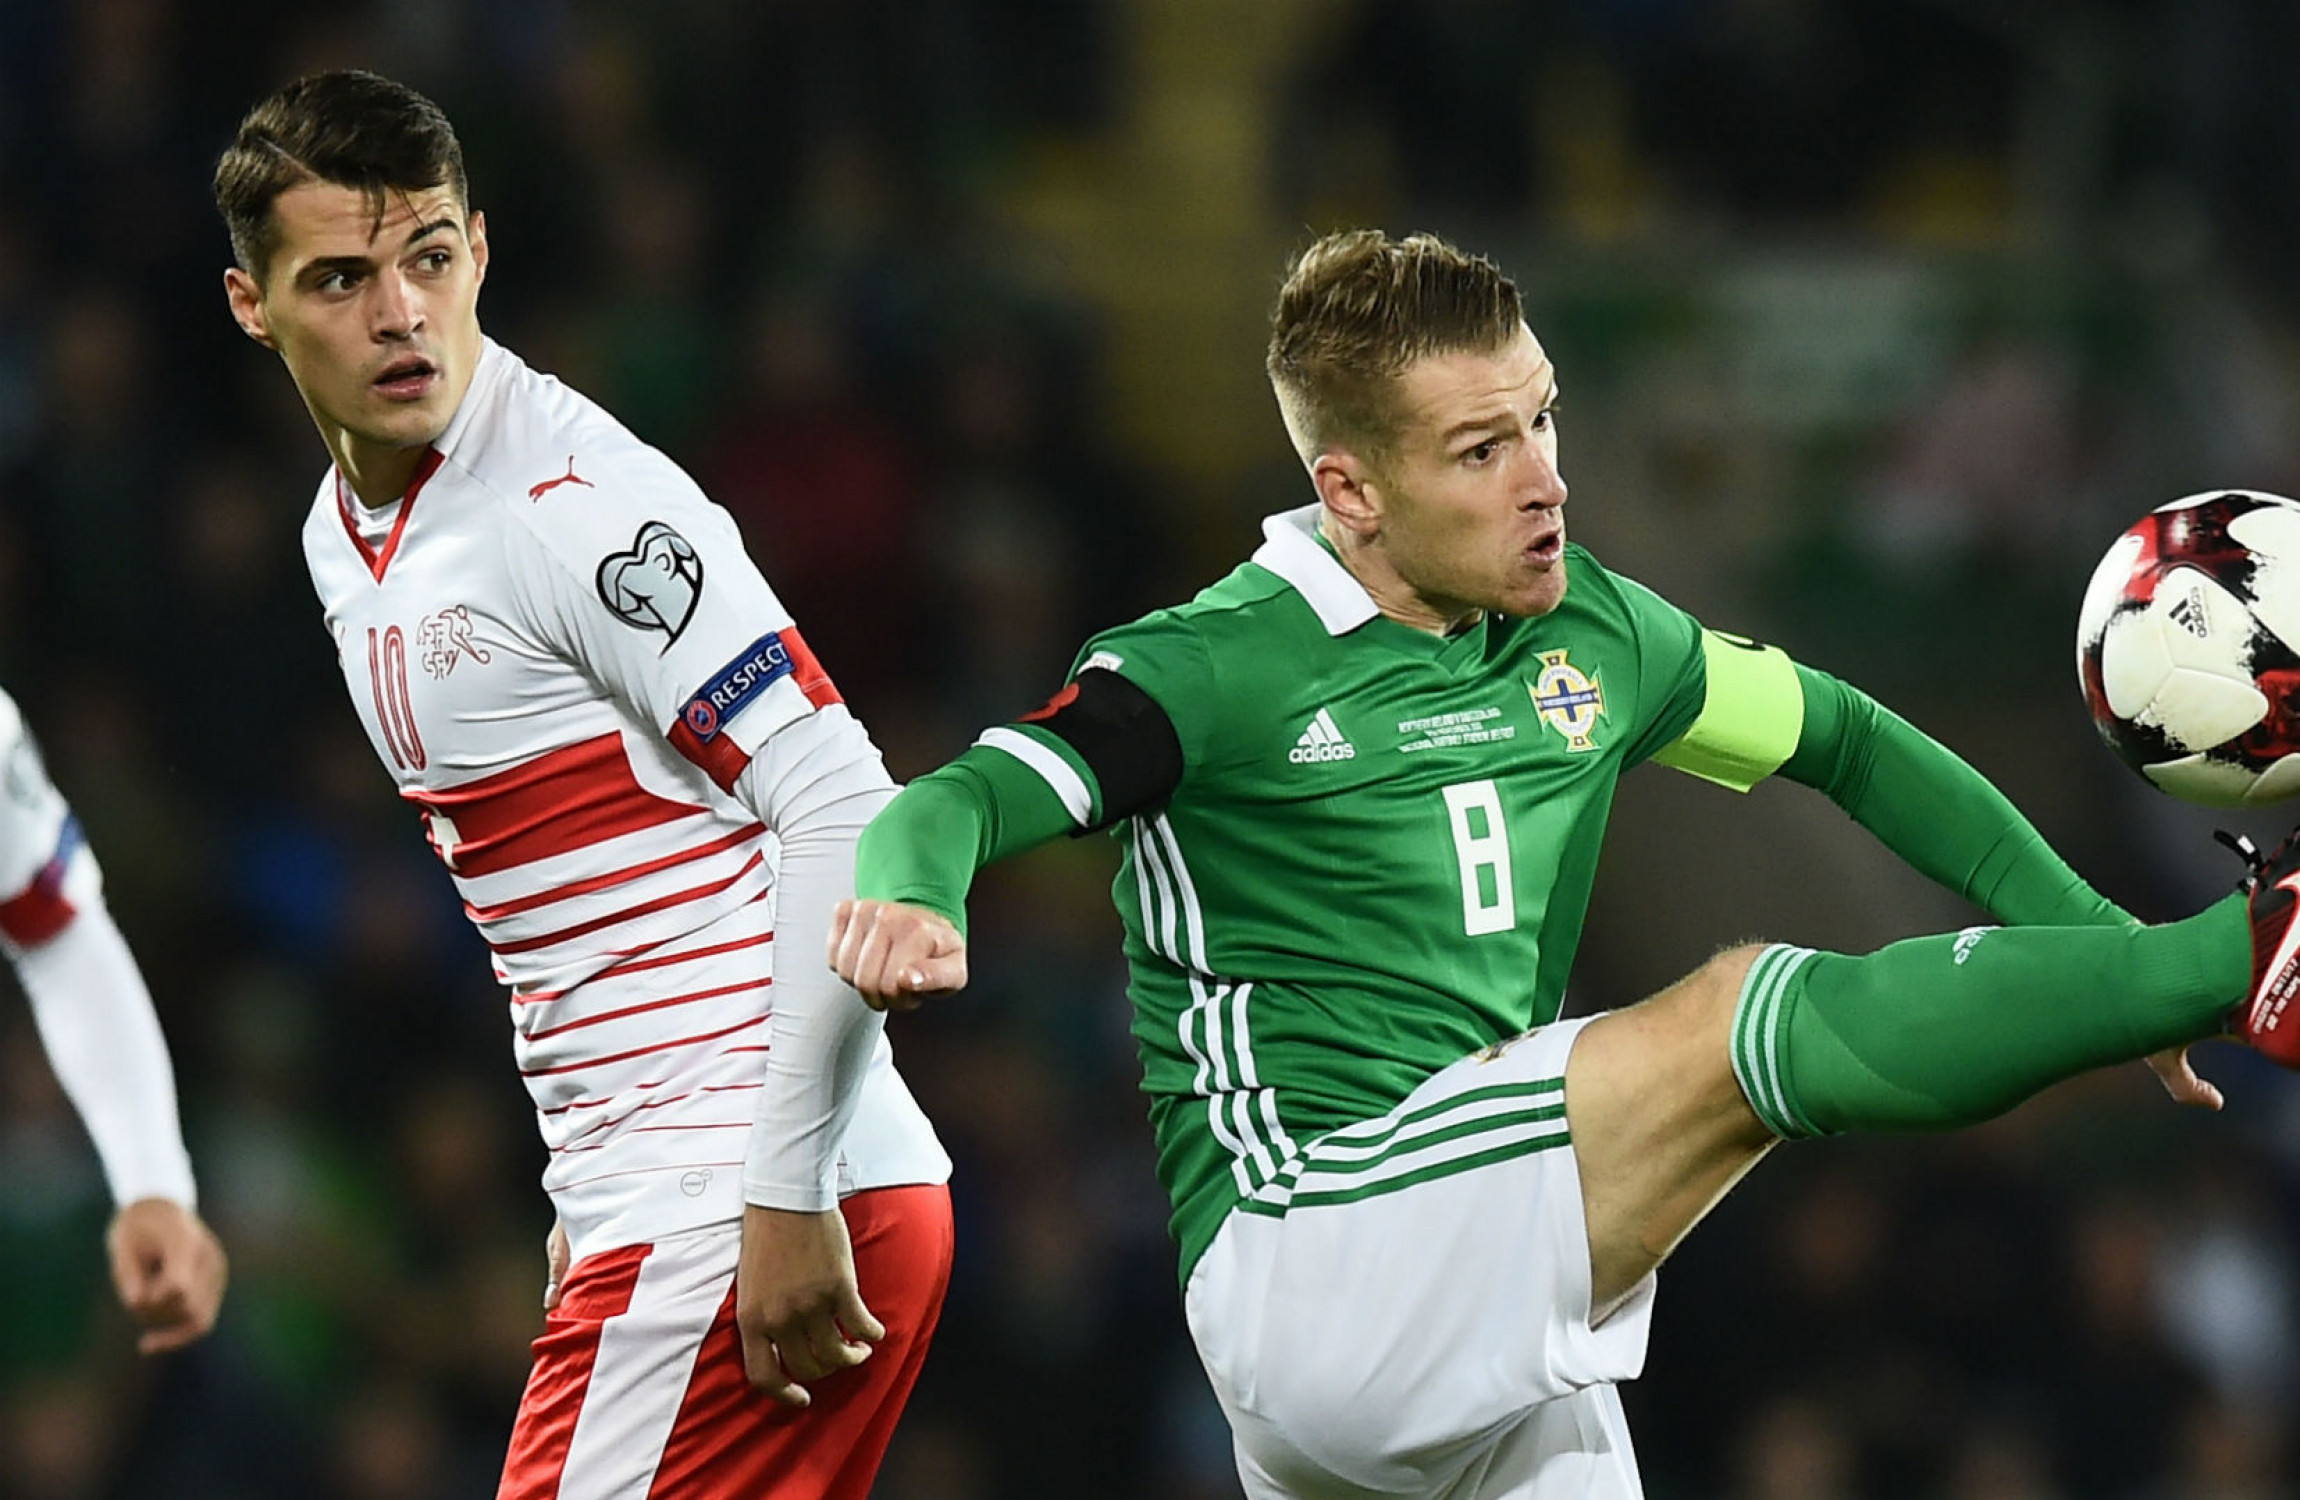 Northern Ireland fail to qualify for World Cup finals despite spirited performance